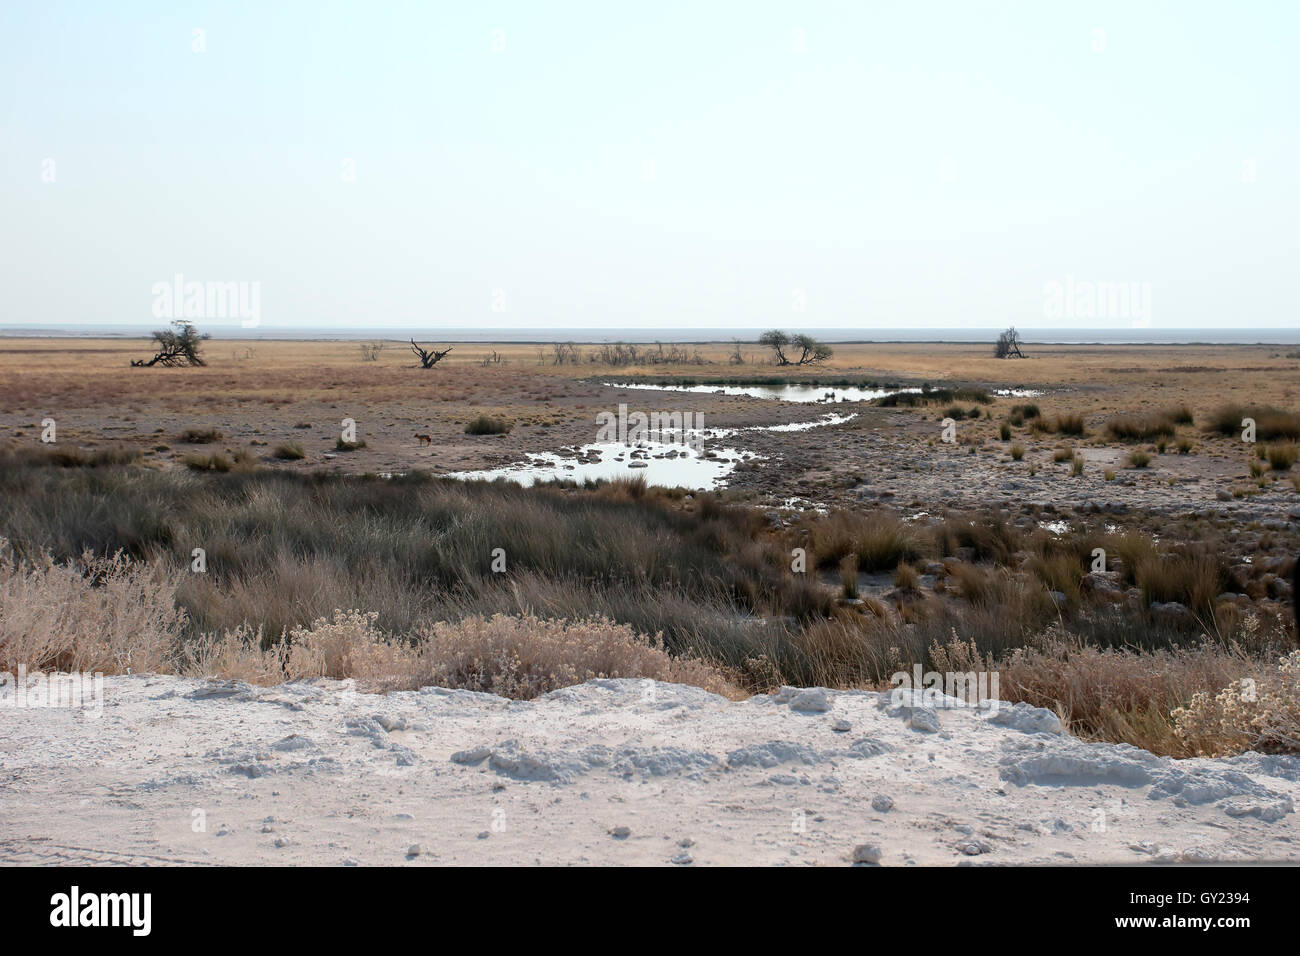 Etosha National Park, Namibia, August 2016 - Stock Image